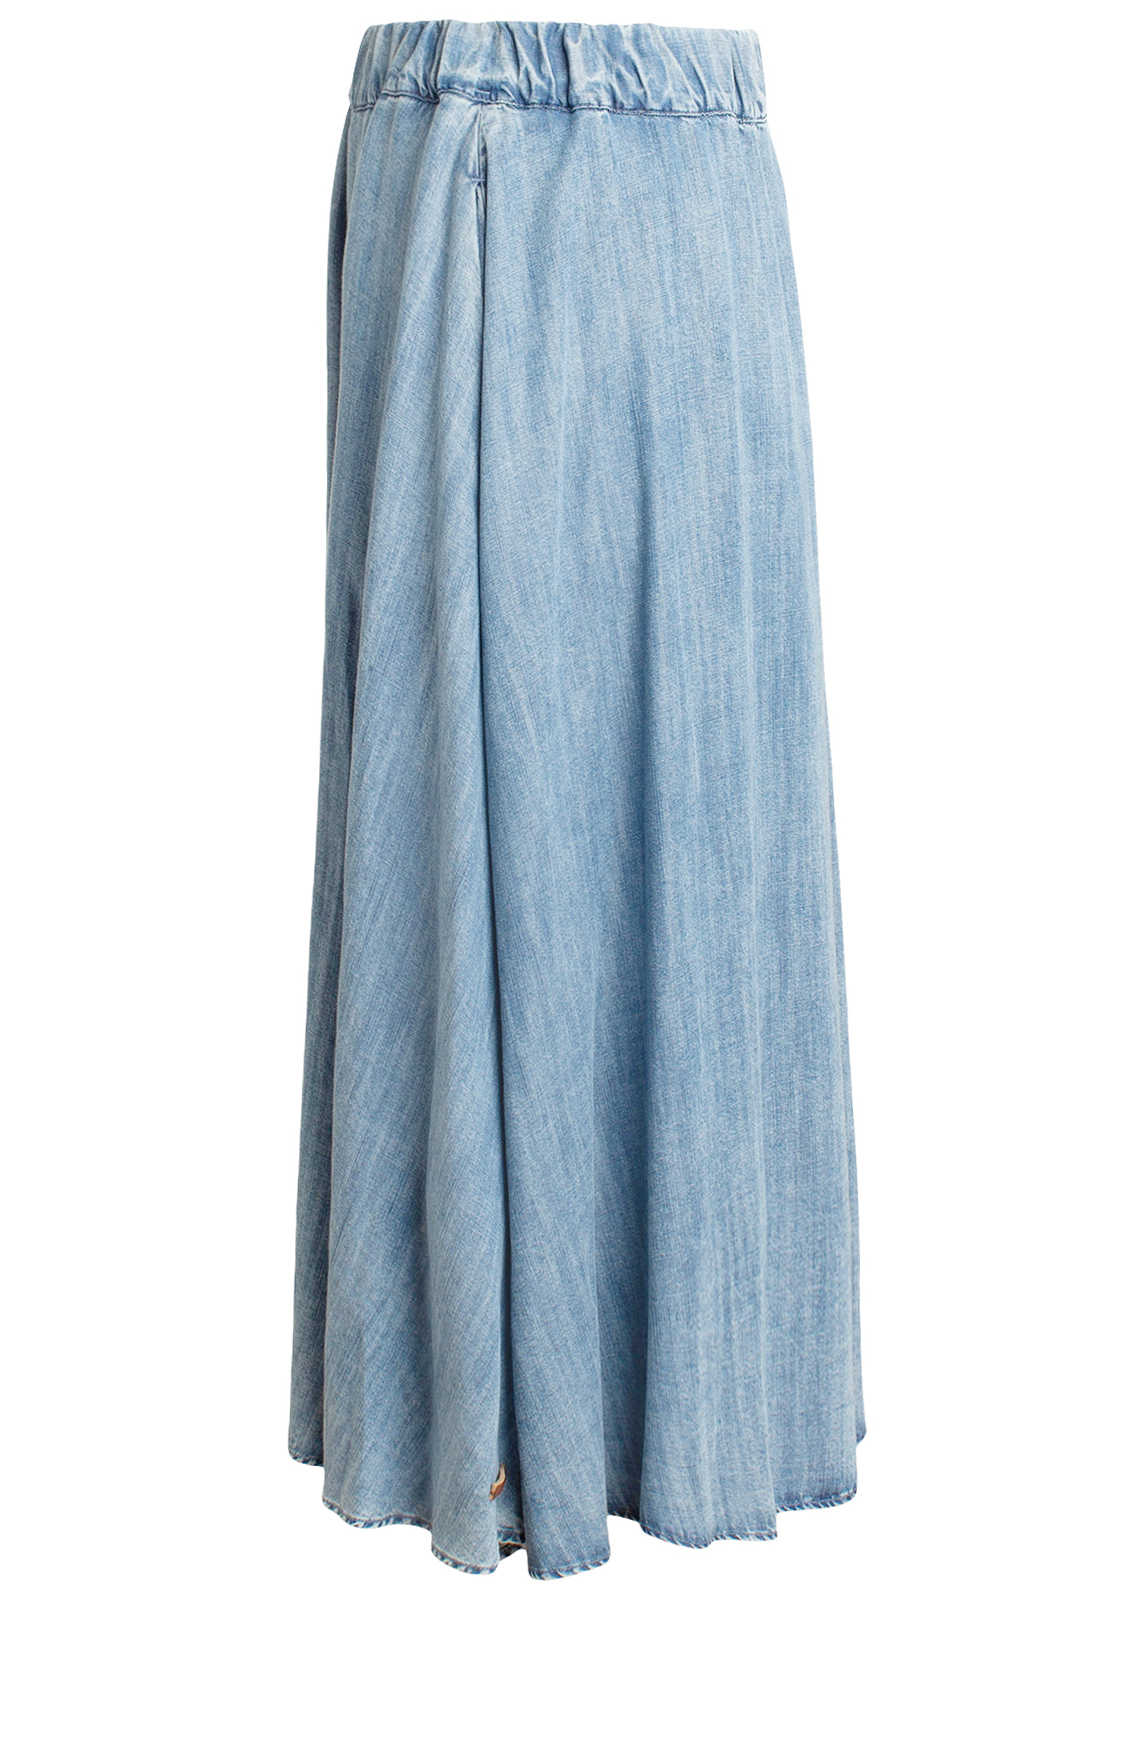 Moscow Dames Denim skirt Blauw